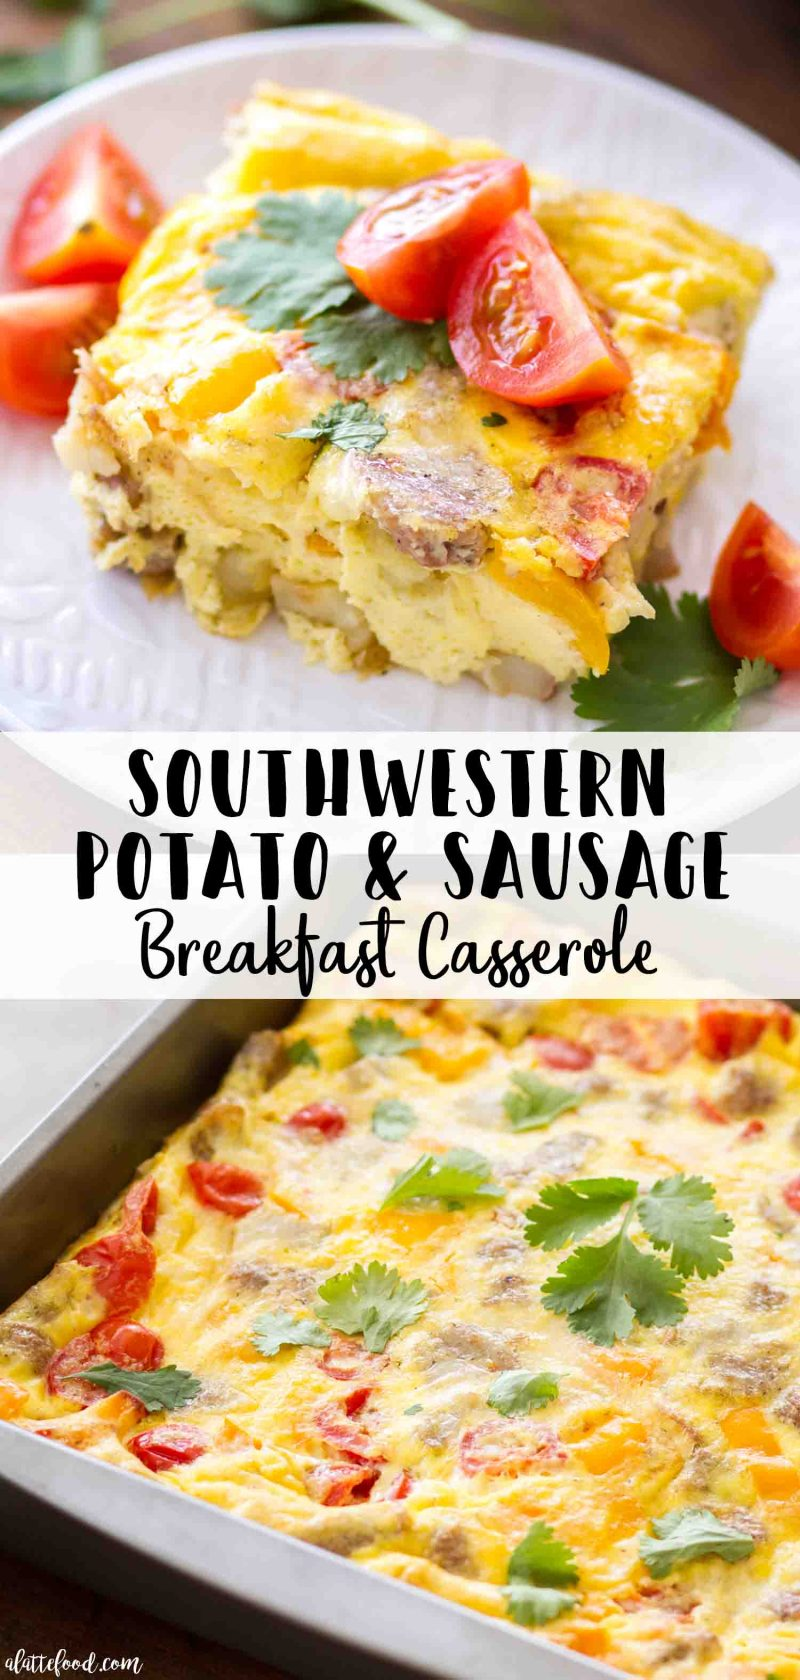 Southwestern Potato and Sausage Breakfast Casserole collage